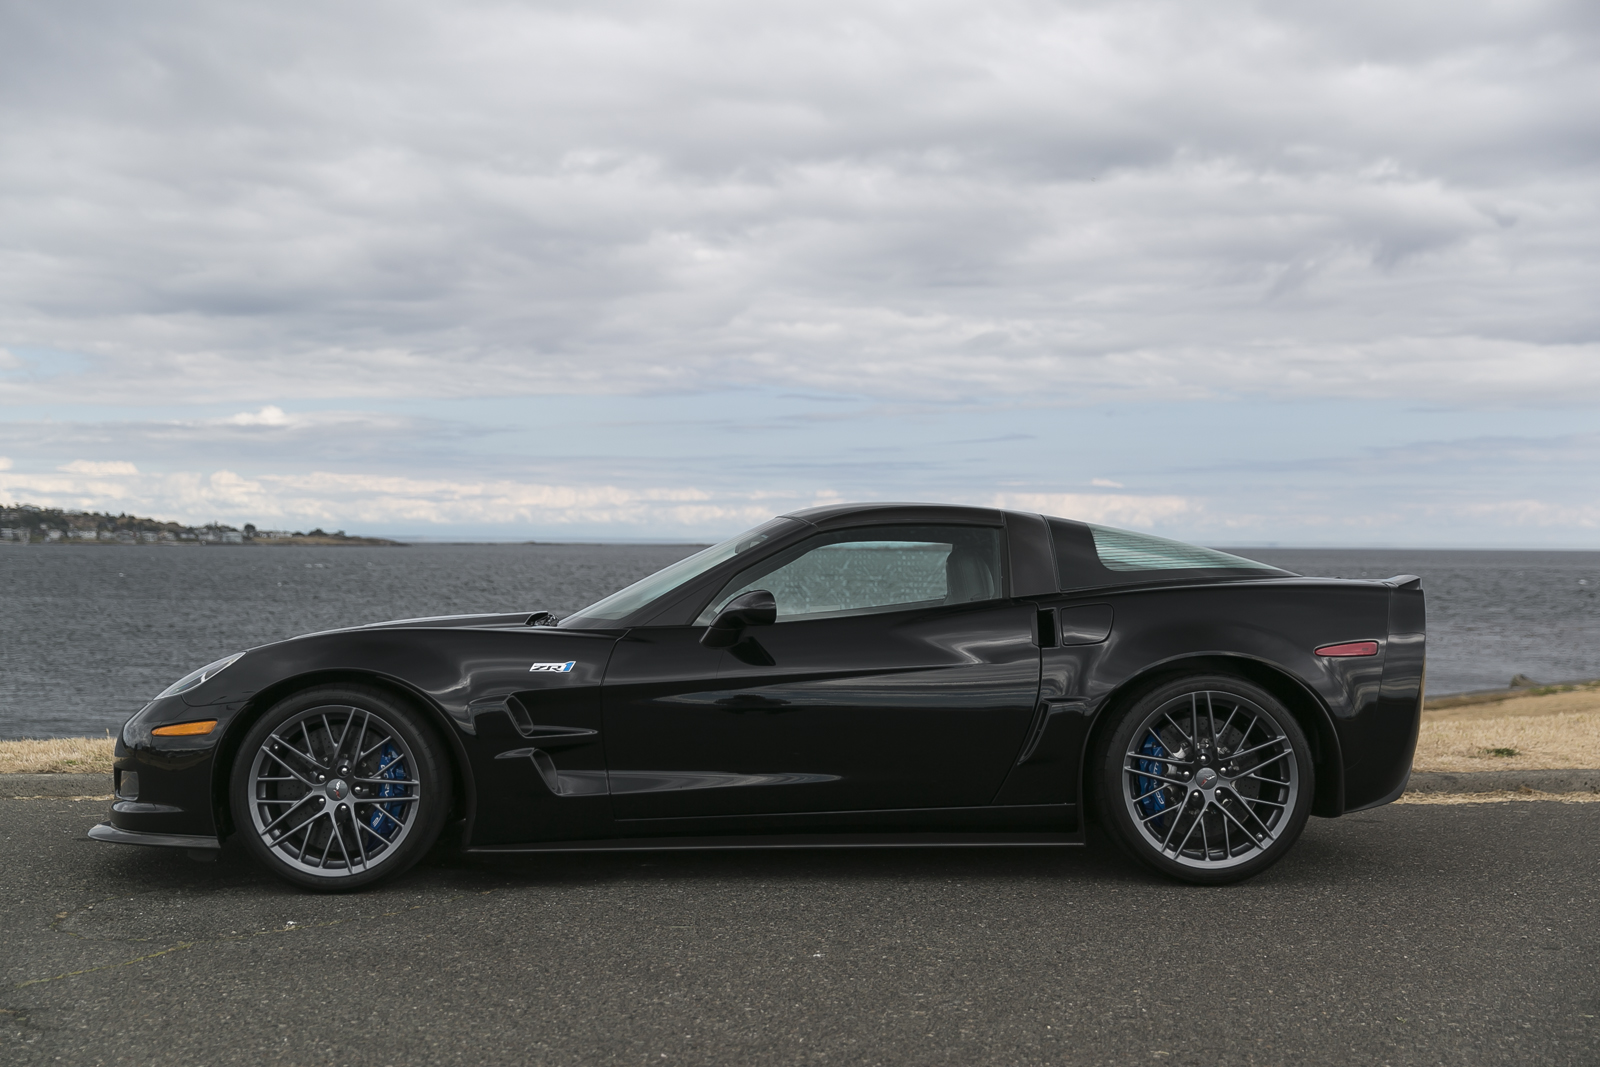 C6 Z06 Corvette For Sale >> 2011 Chevrolet Corvette ZR1 C6 - Silver Arrow Cars Ltd.